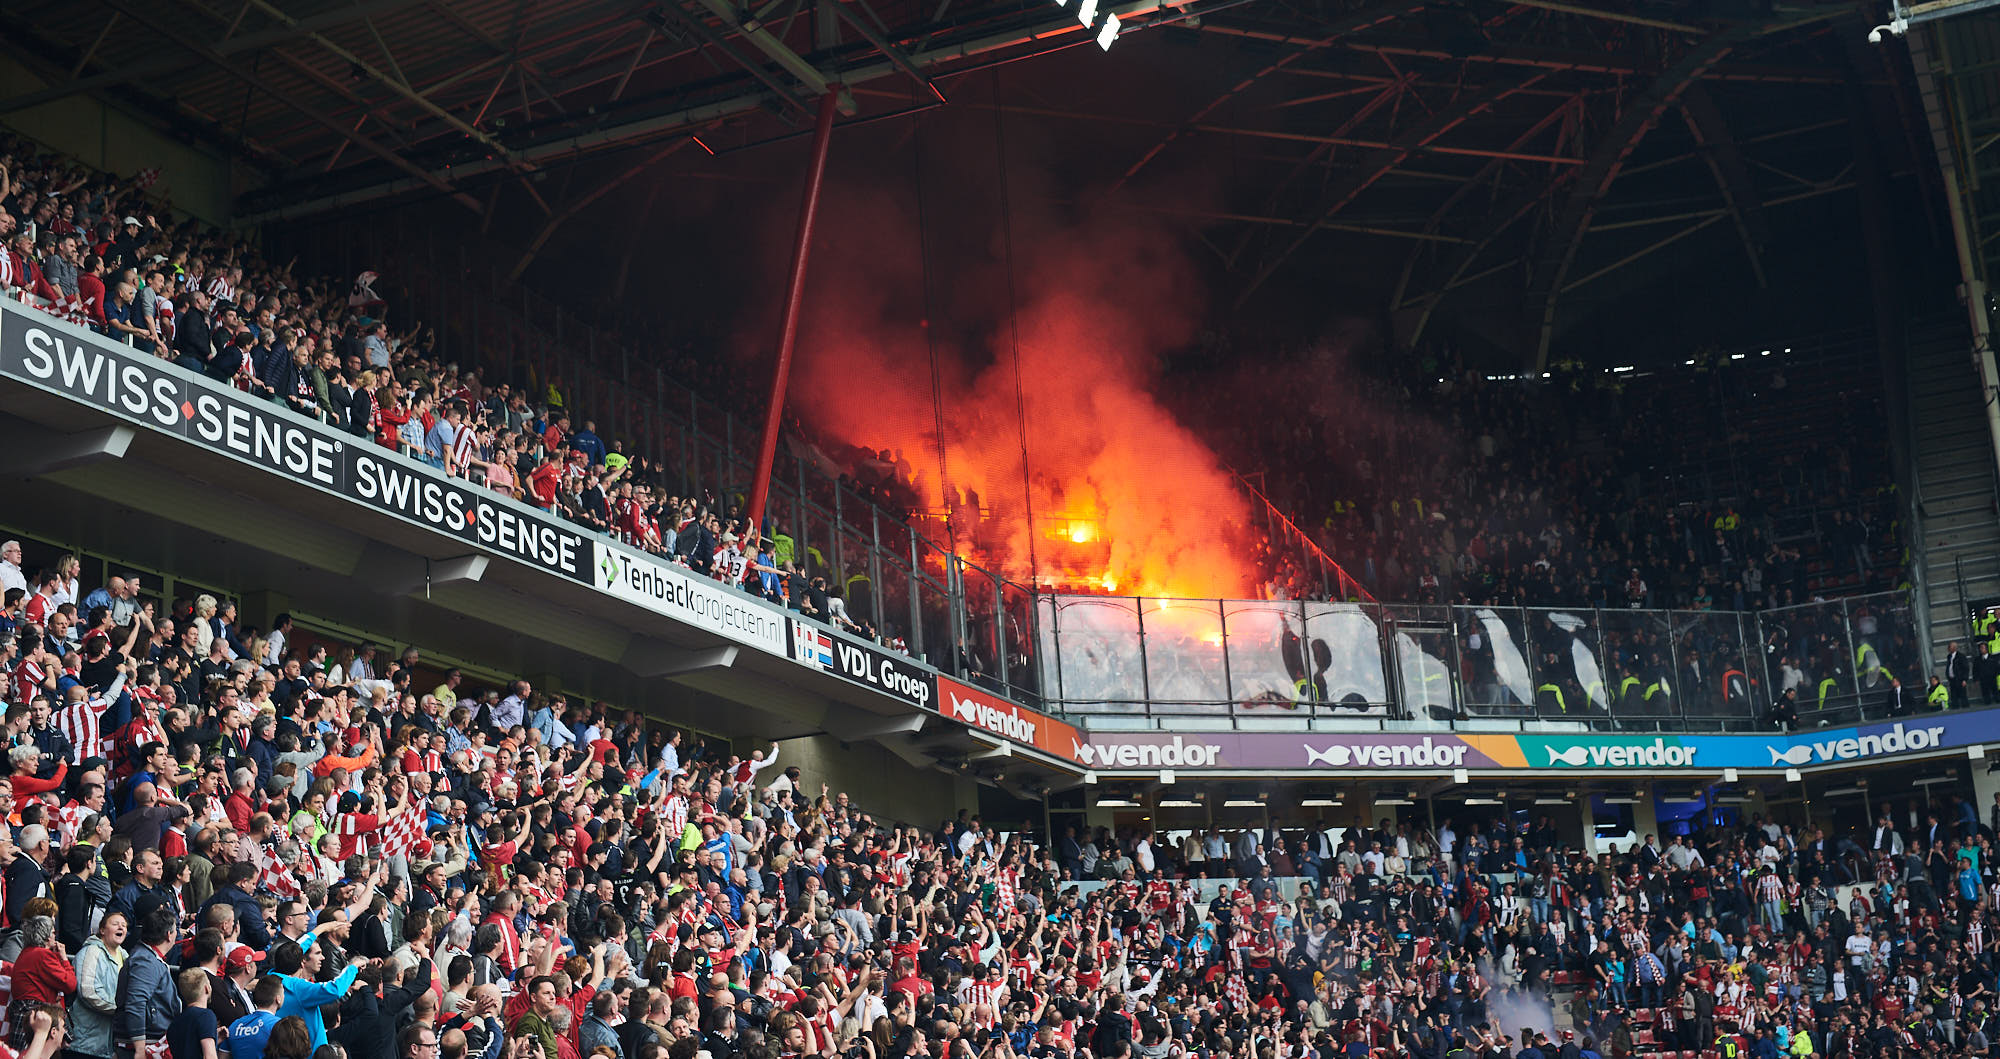 Fire in the away stands housing Ajax supporters in the Philips Stadium